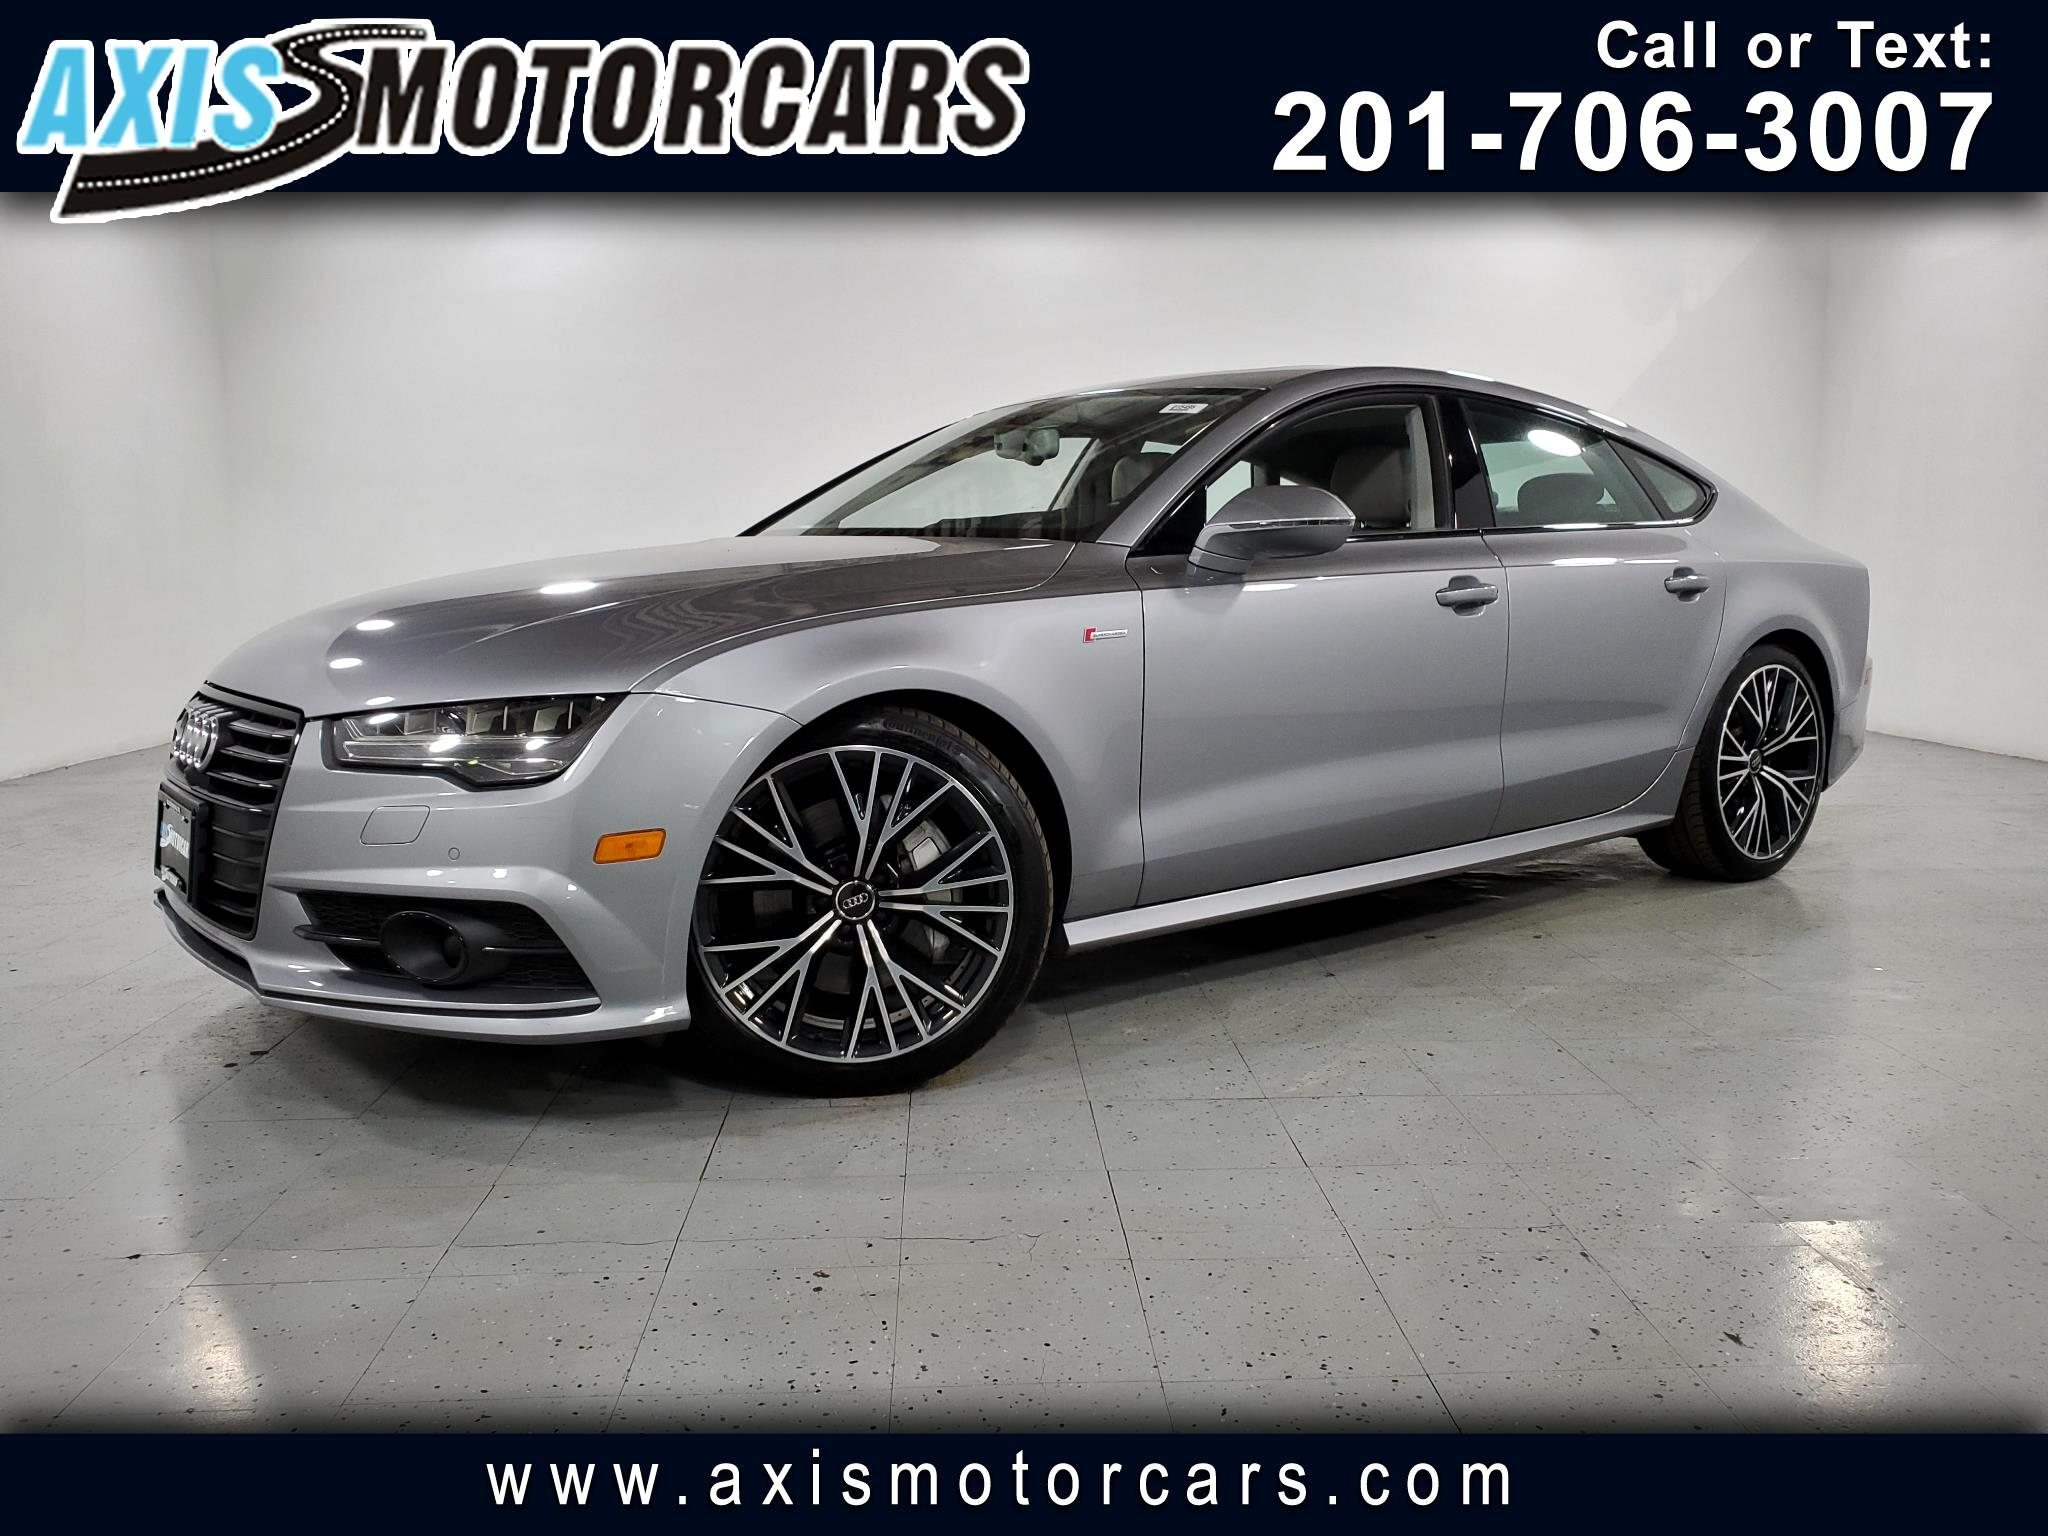 2016 Audi A7 Supercharged w/Navigation Bose Sound System